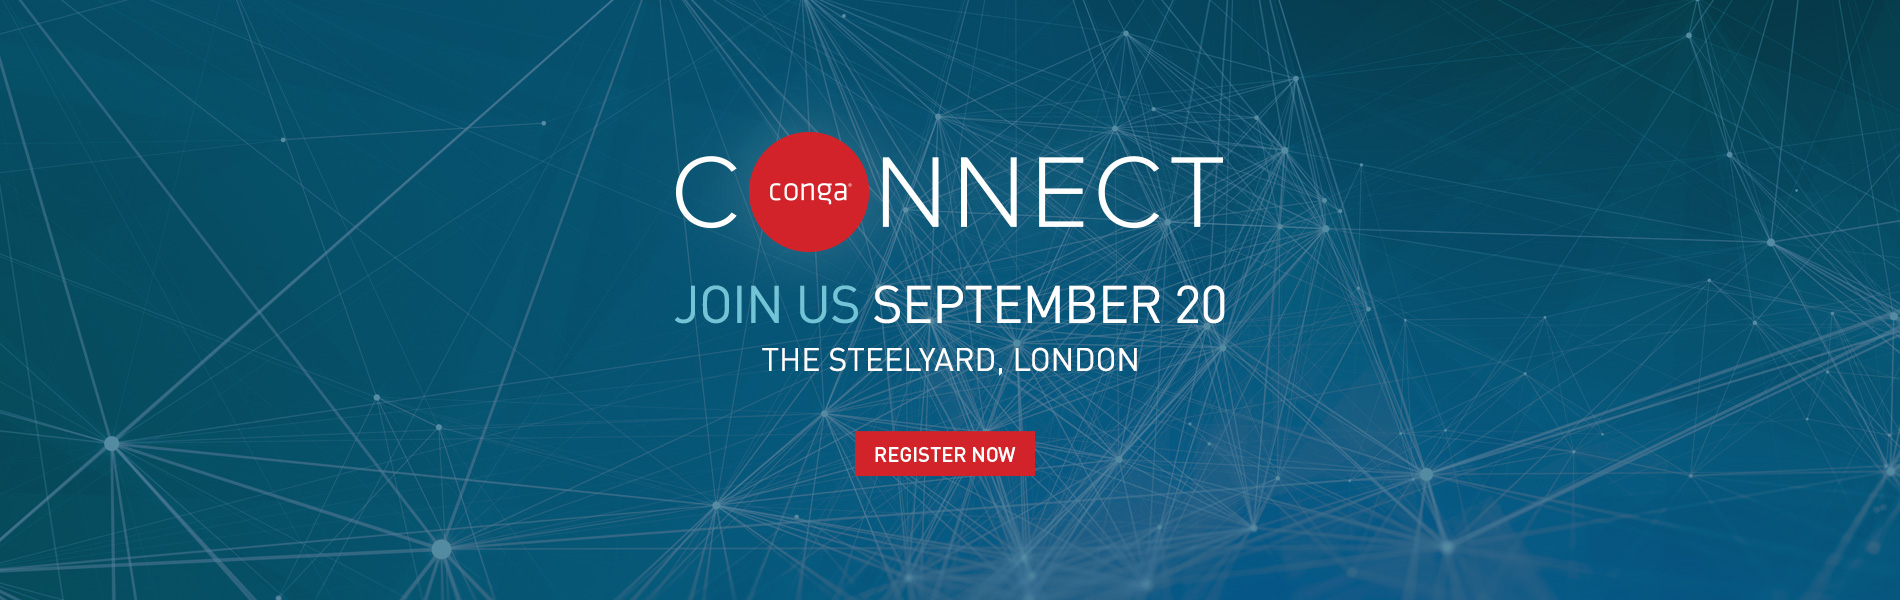 Conga Connect London 2017